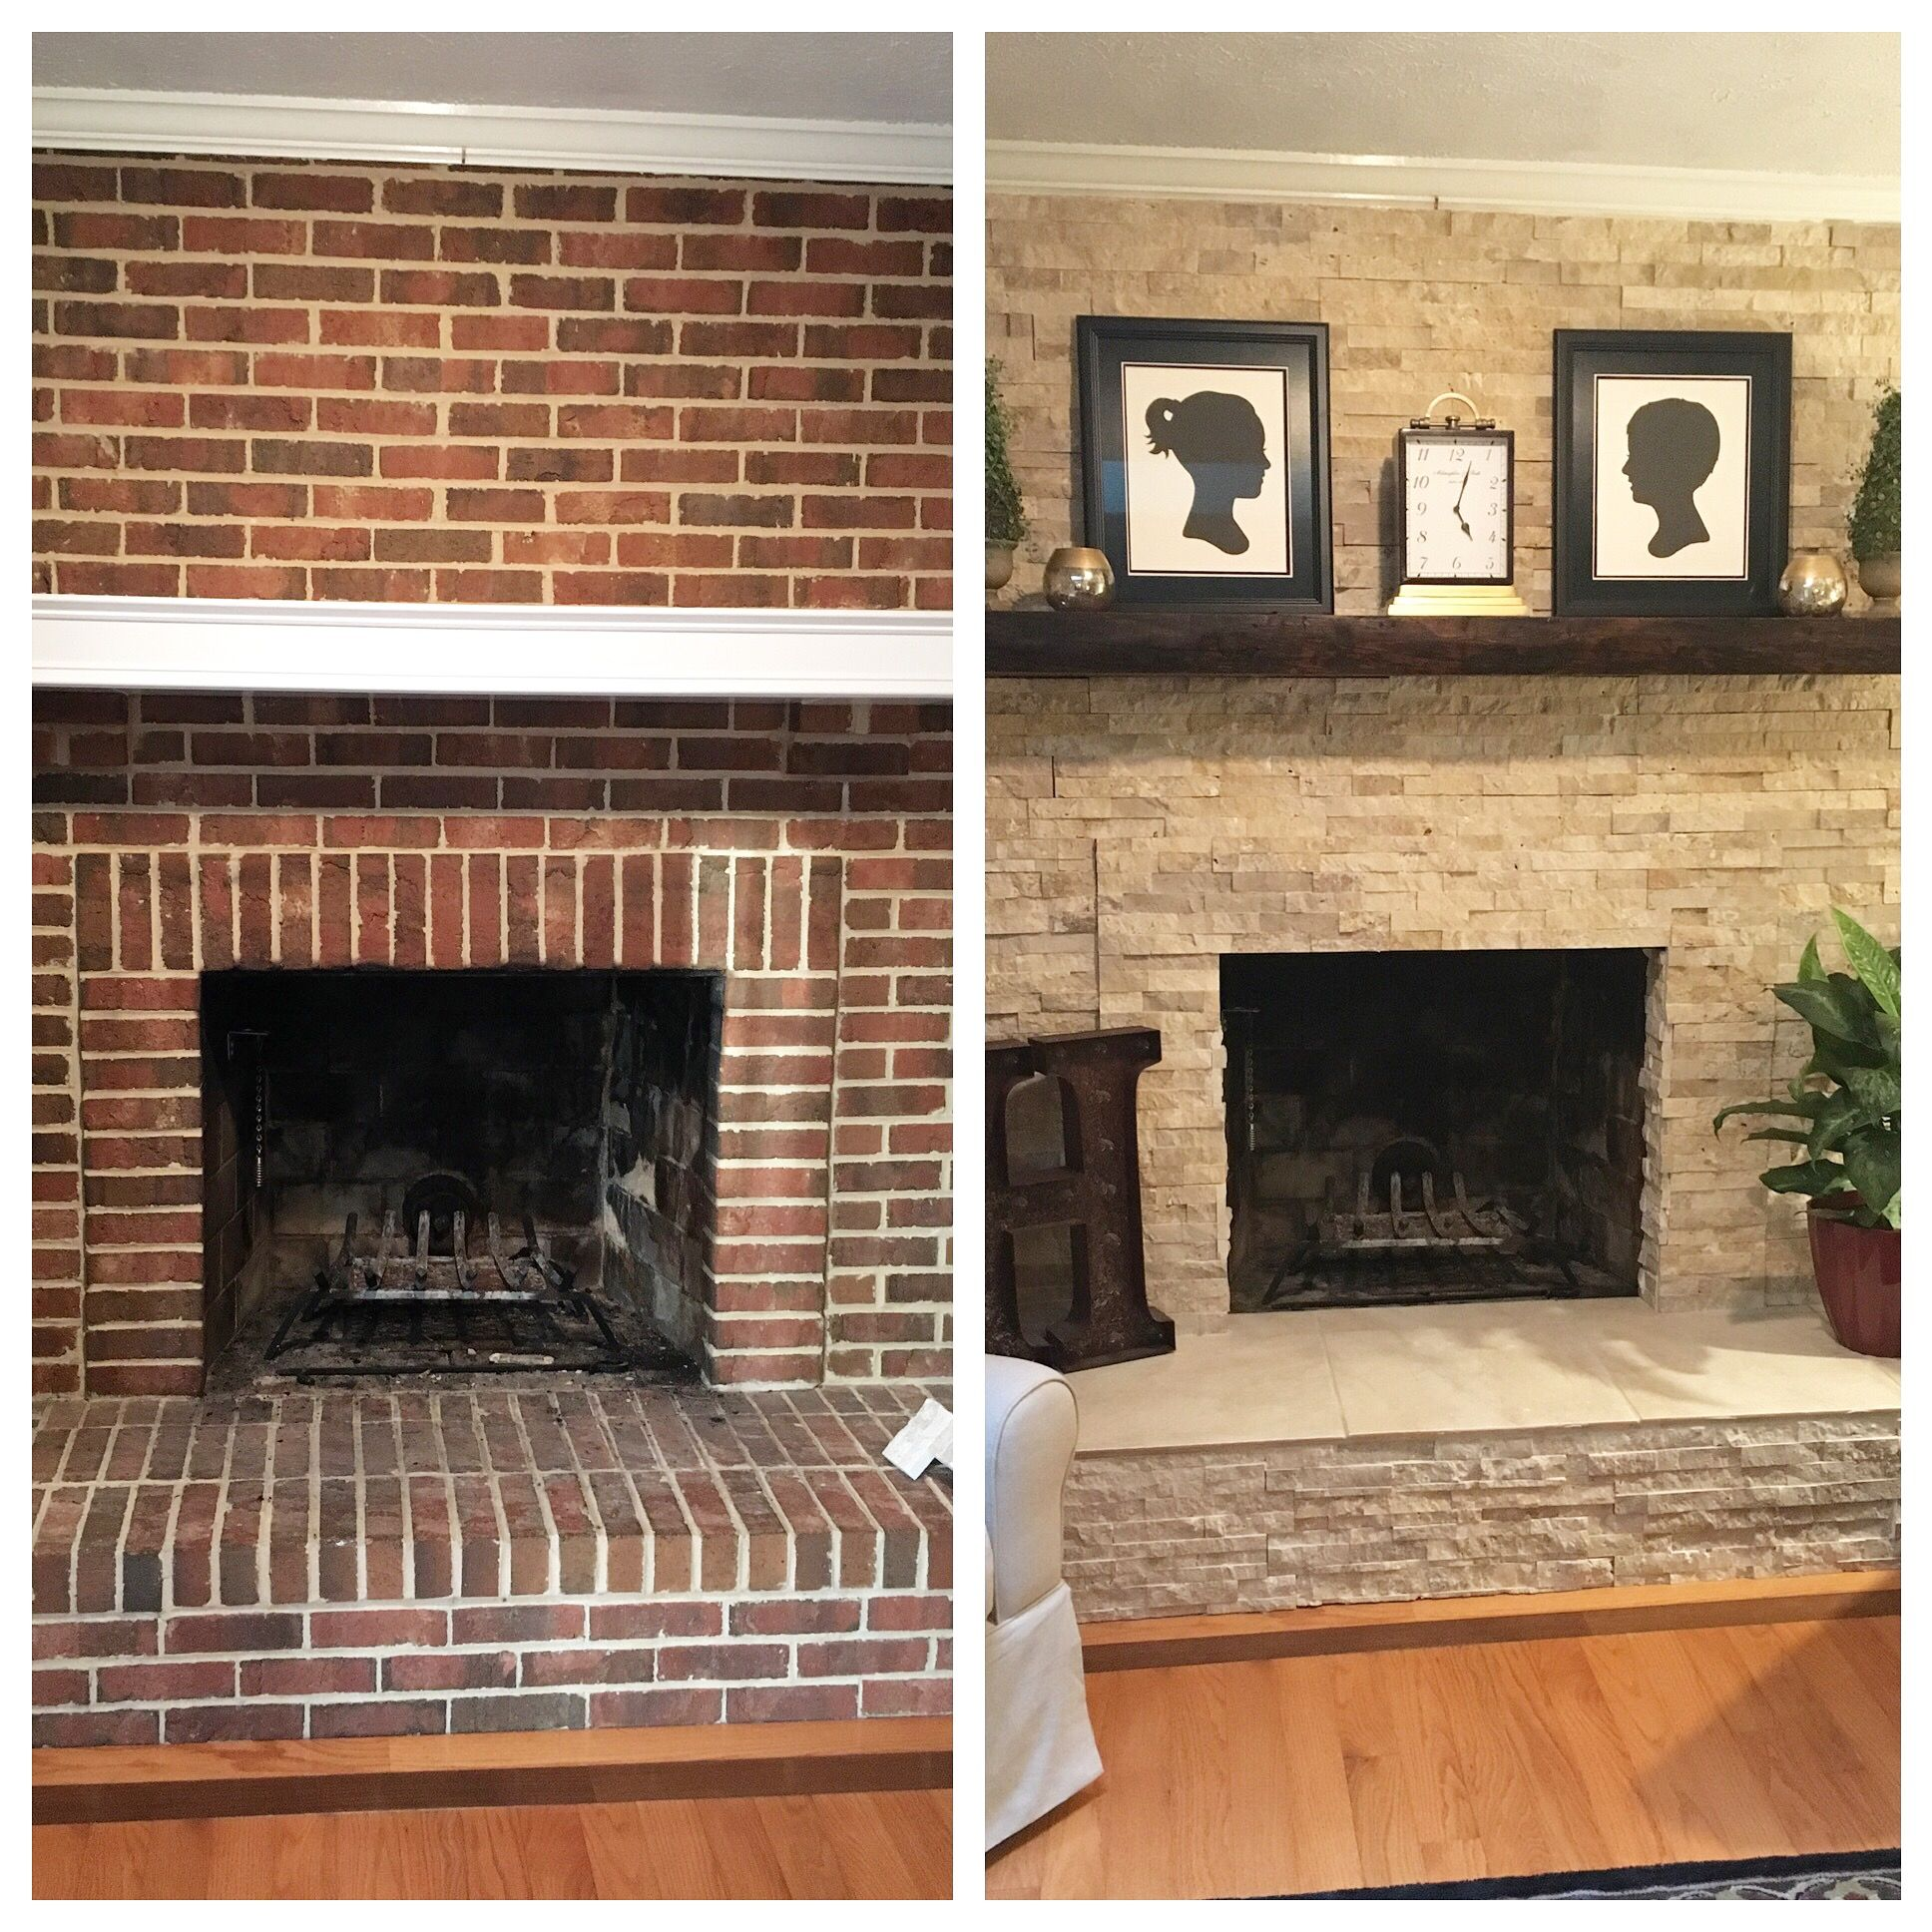 Fireplace makeover before after Fireplace Pinterest